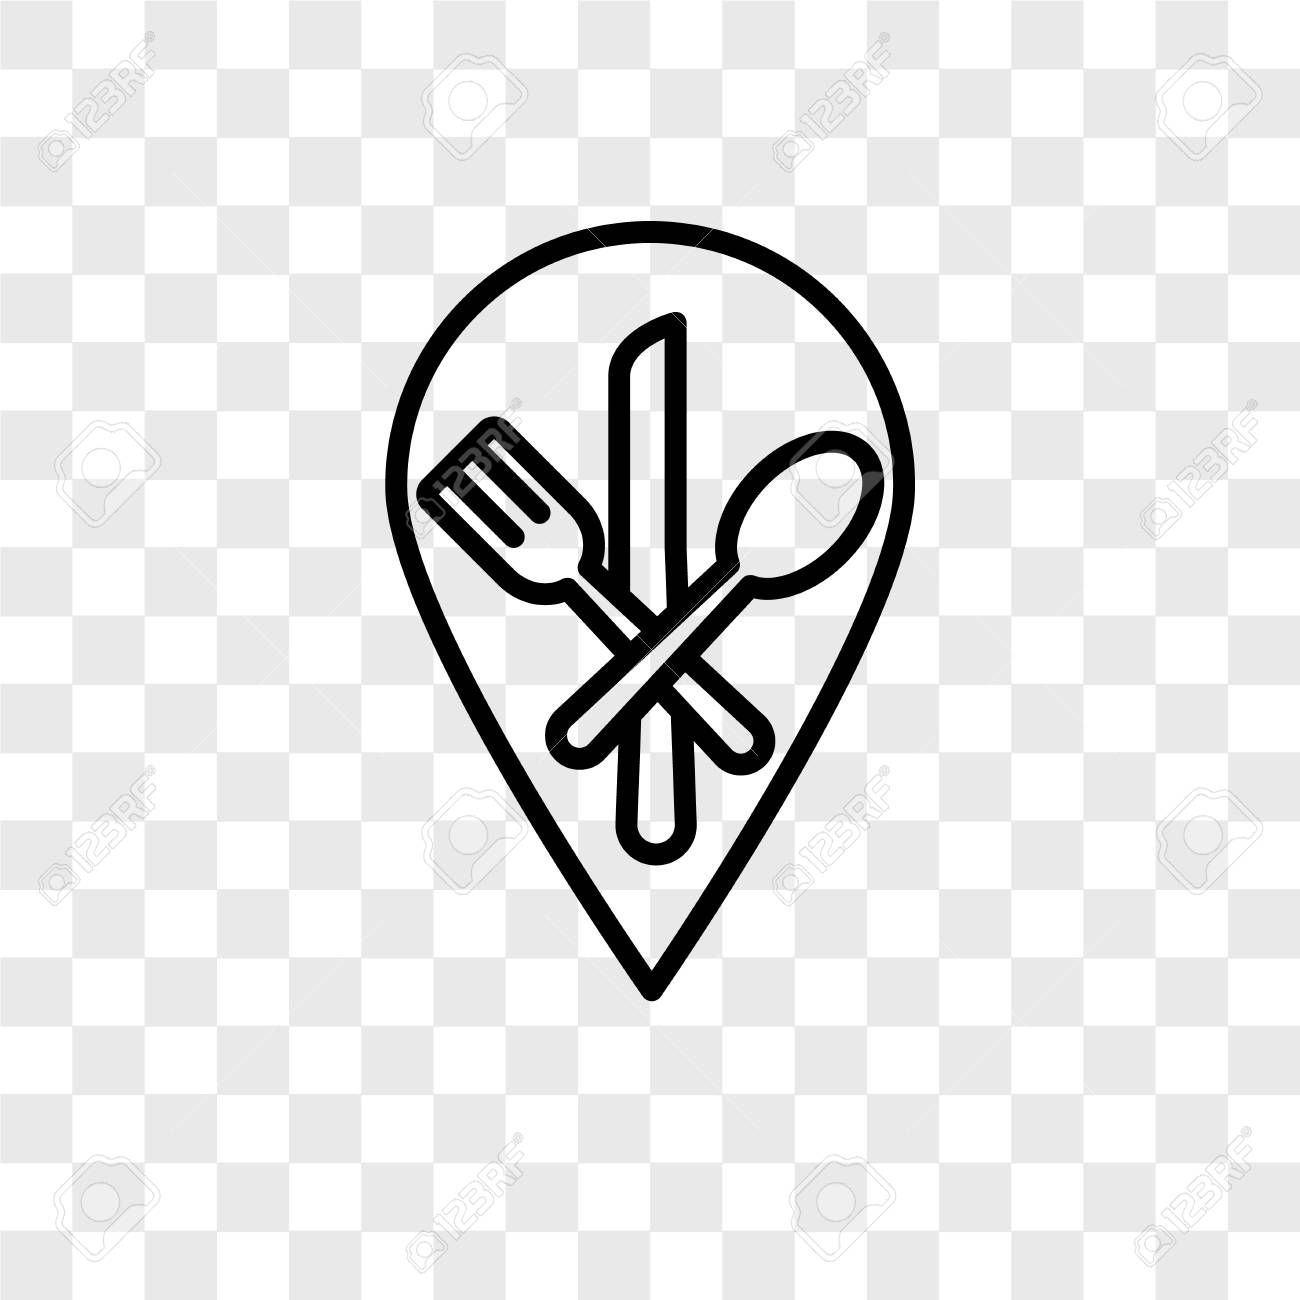 Restaurant Vector Icon Isolated On Transparent Background